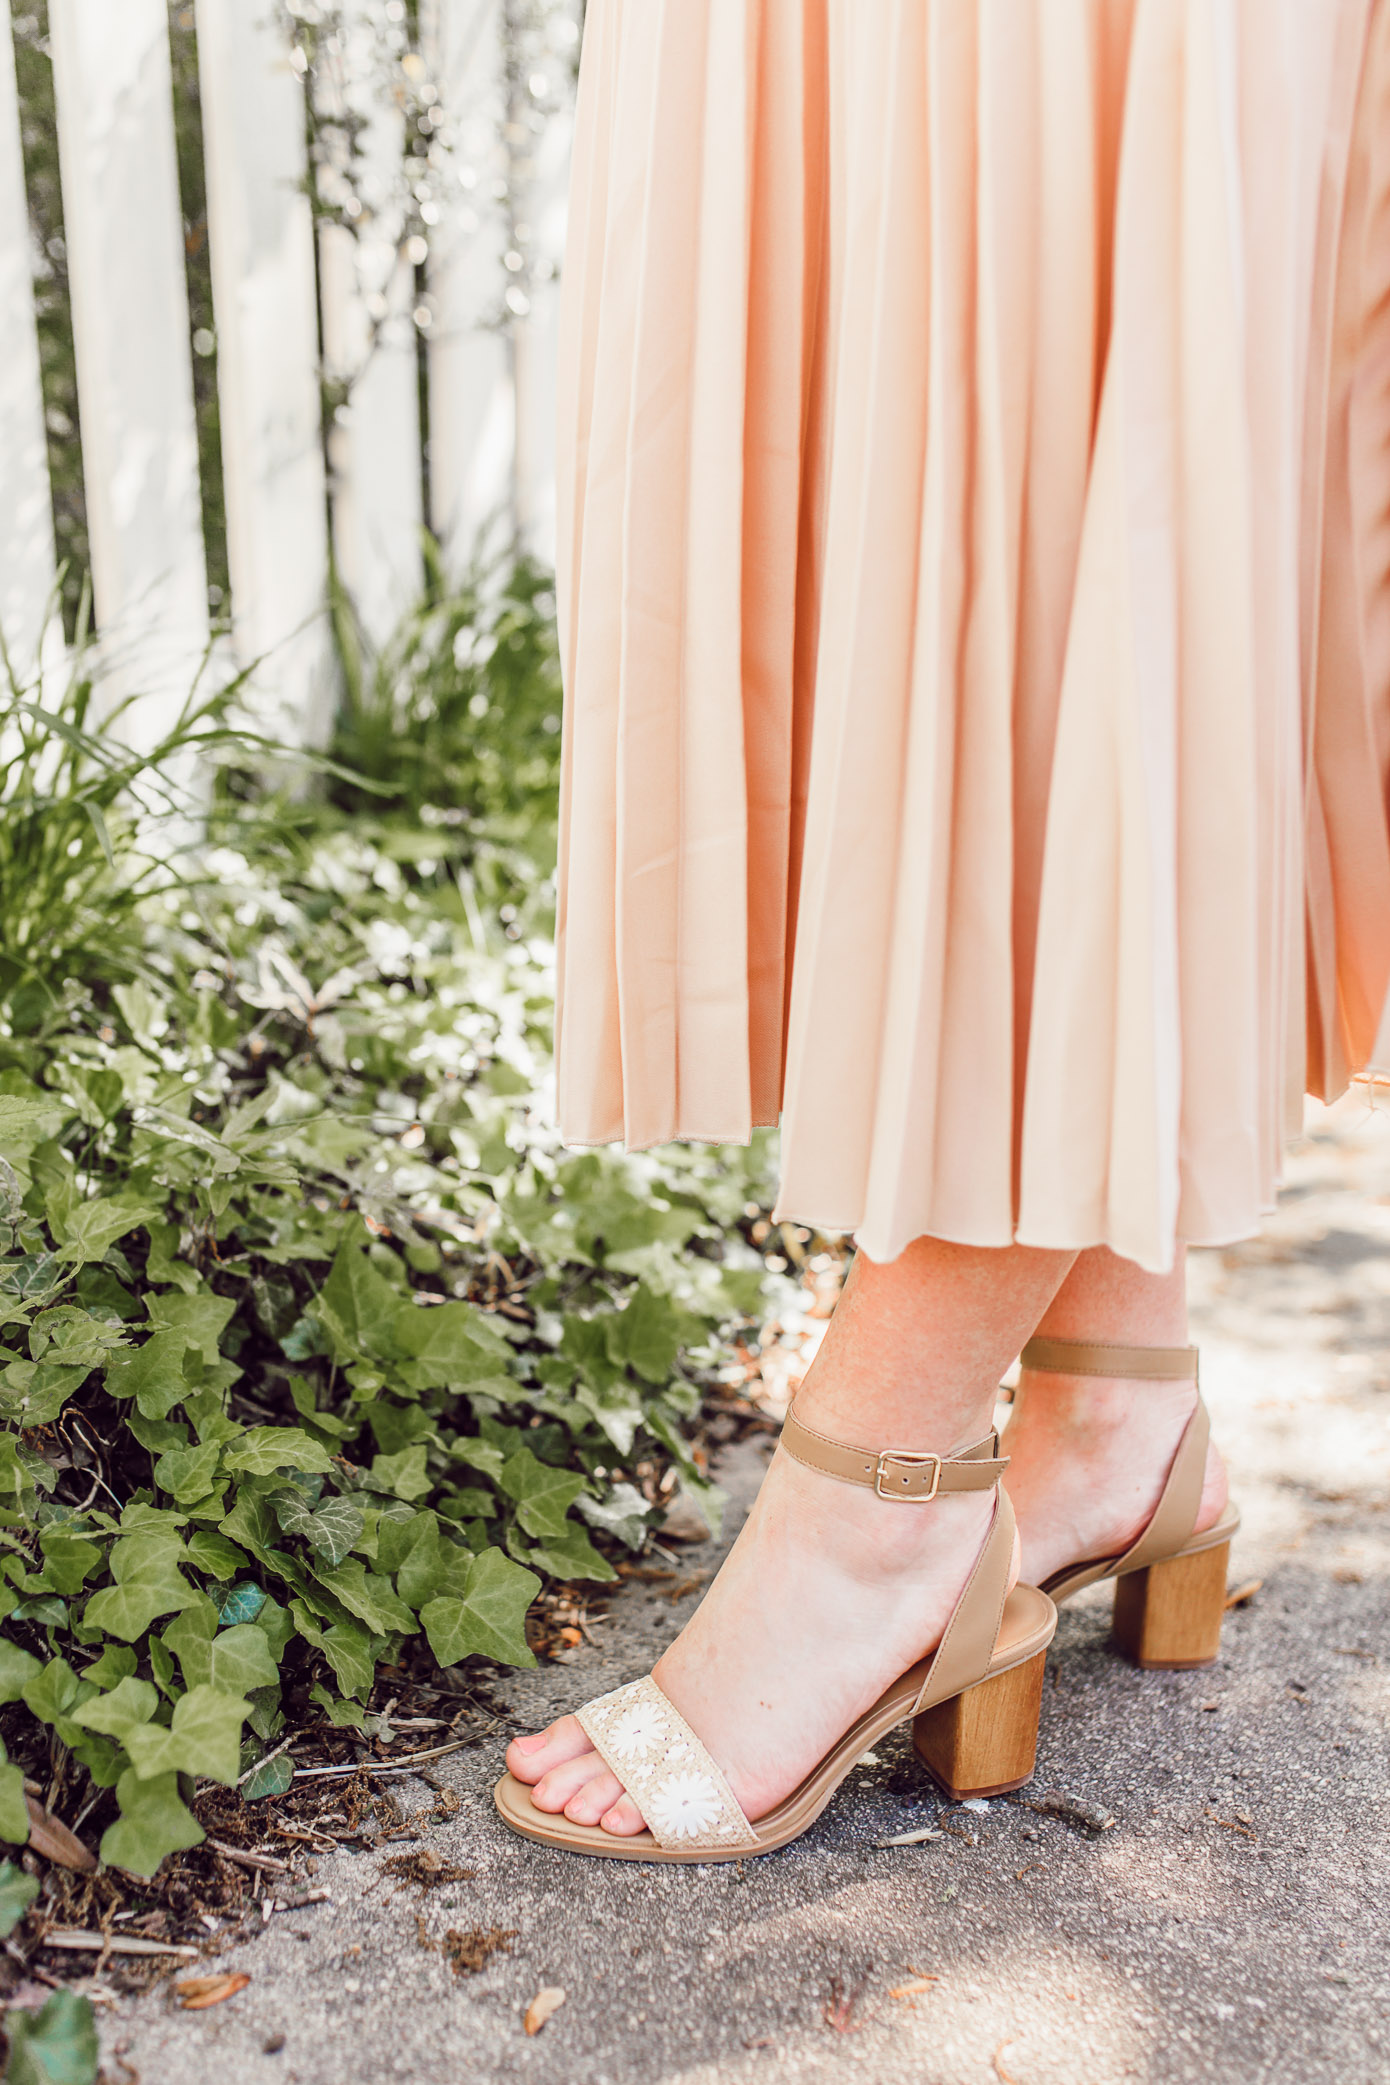 The must-have high heel sandals to shop for spring and summer with a neutral outfit | ft. Chicwish, Jack Rogers, Lisi Lerch | Louella Reese